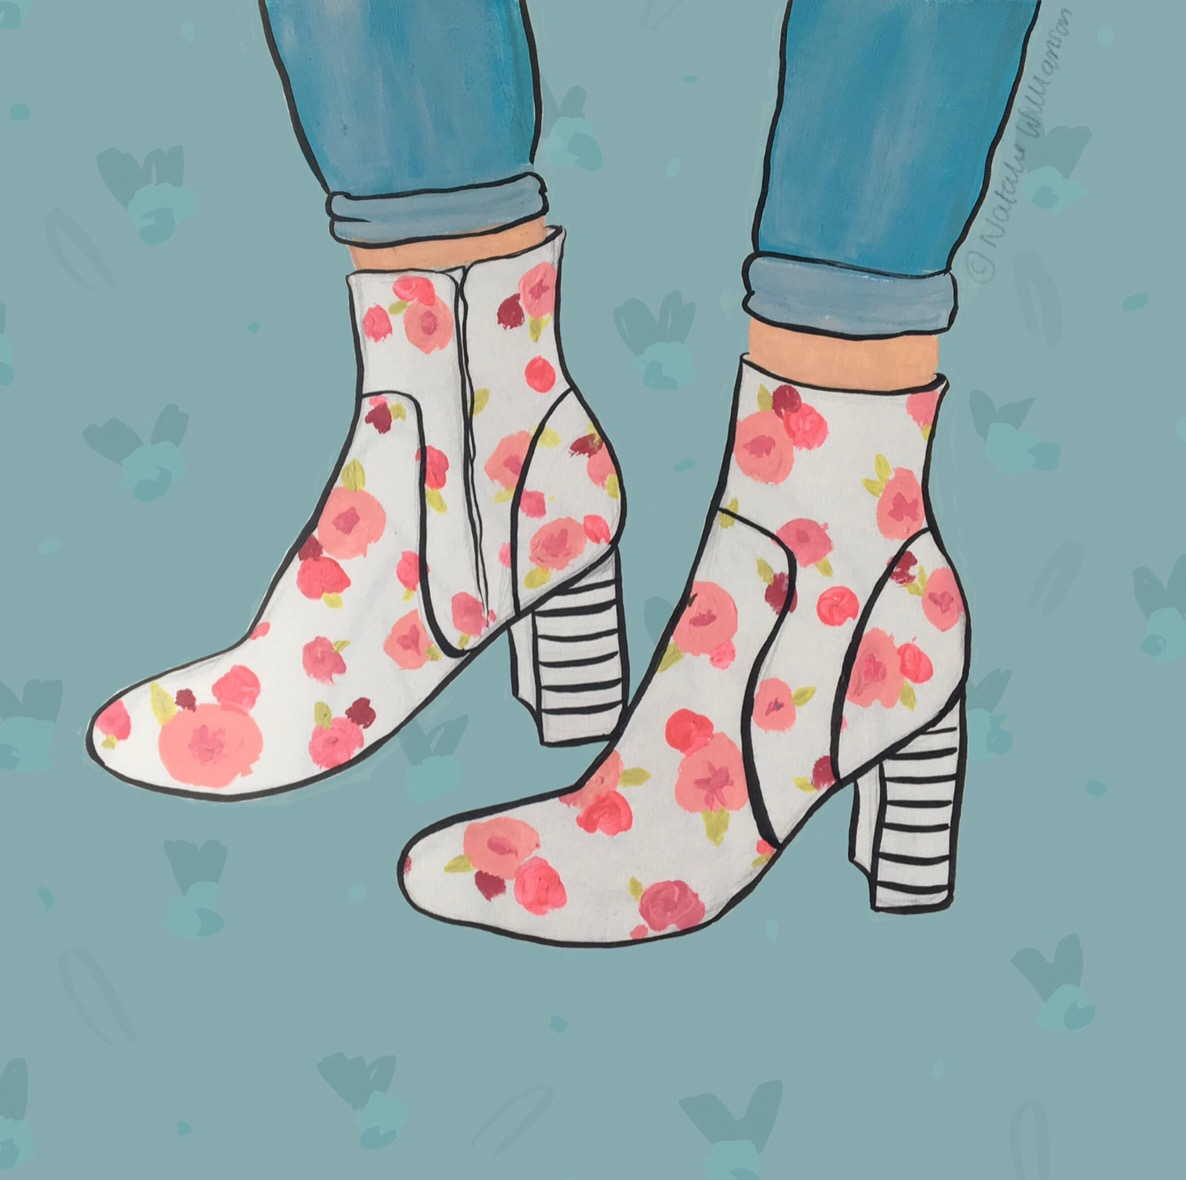 These Boots - Acrylic, ink and digital